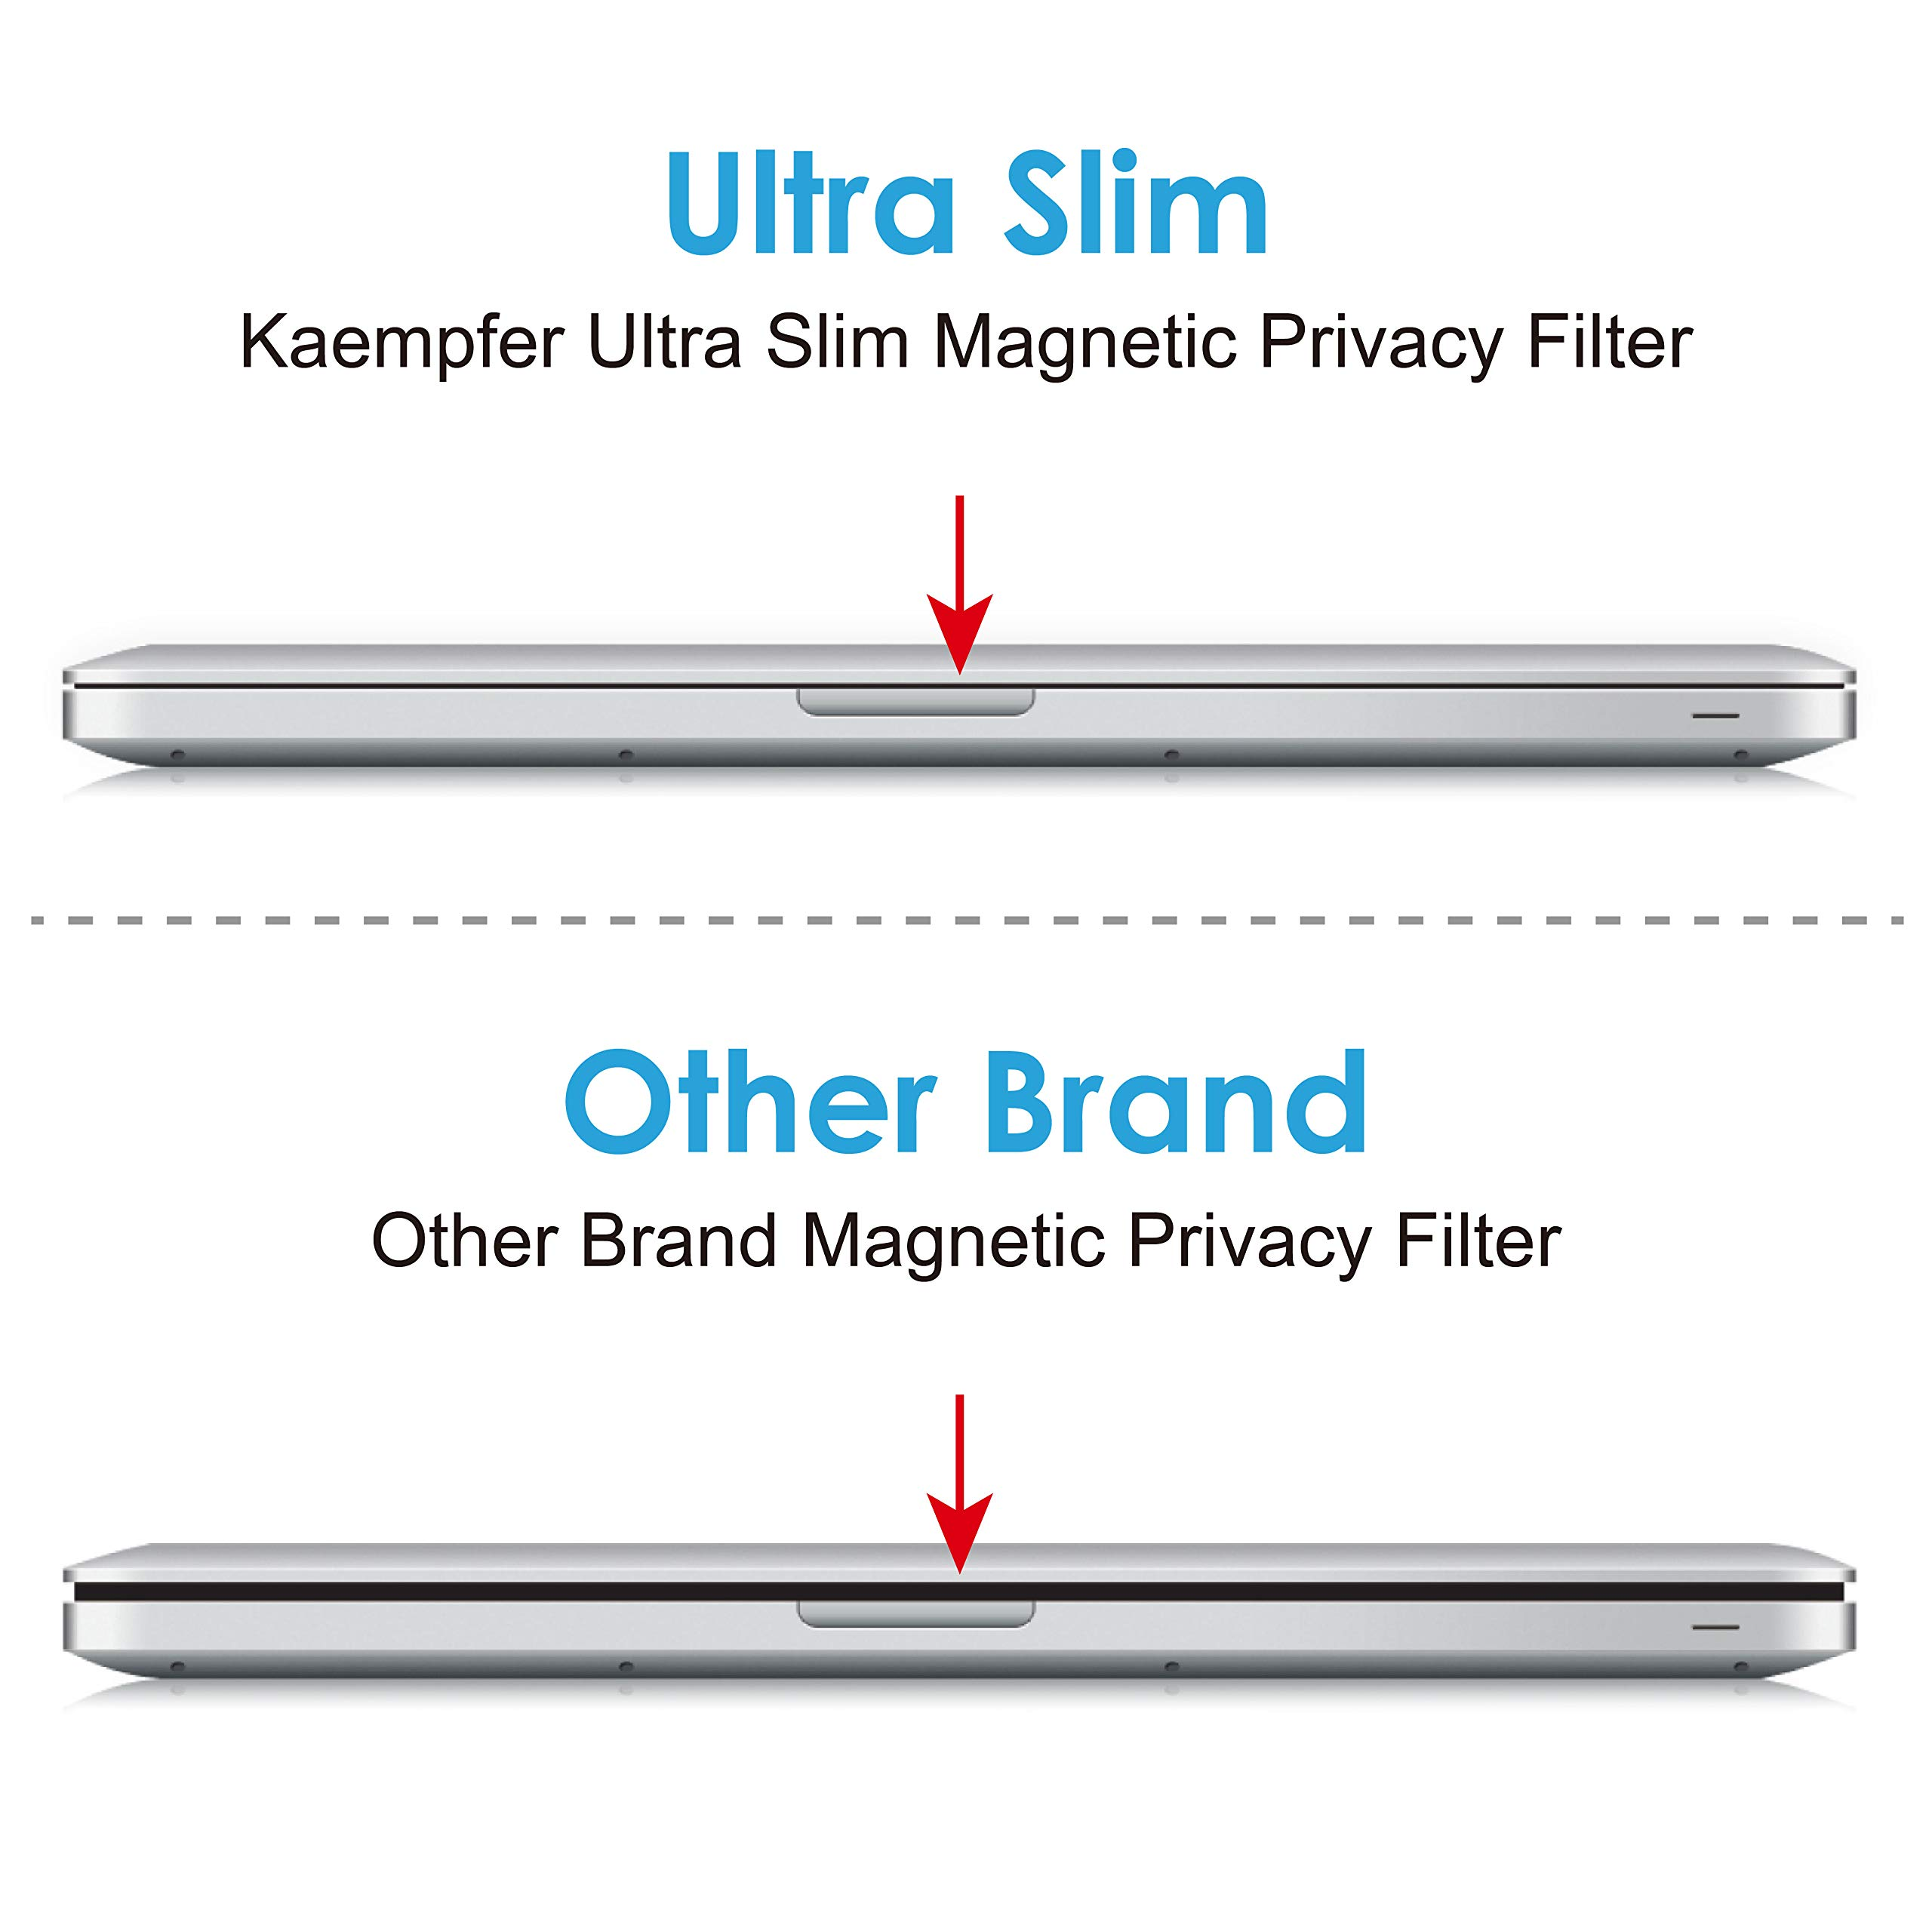 KAEMPFER Easy On/Off Magnetic Privacy Filter, No -Blue Light, Korea LG Filter High Definition, Screen Protector for Apple MacBook pro 15'' Touch Bar/No n-Touch Bar (Mid 2016) Retina Display for Laptop by KAEMPFER (Image #4)